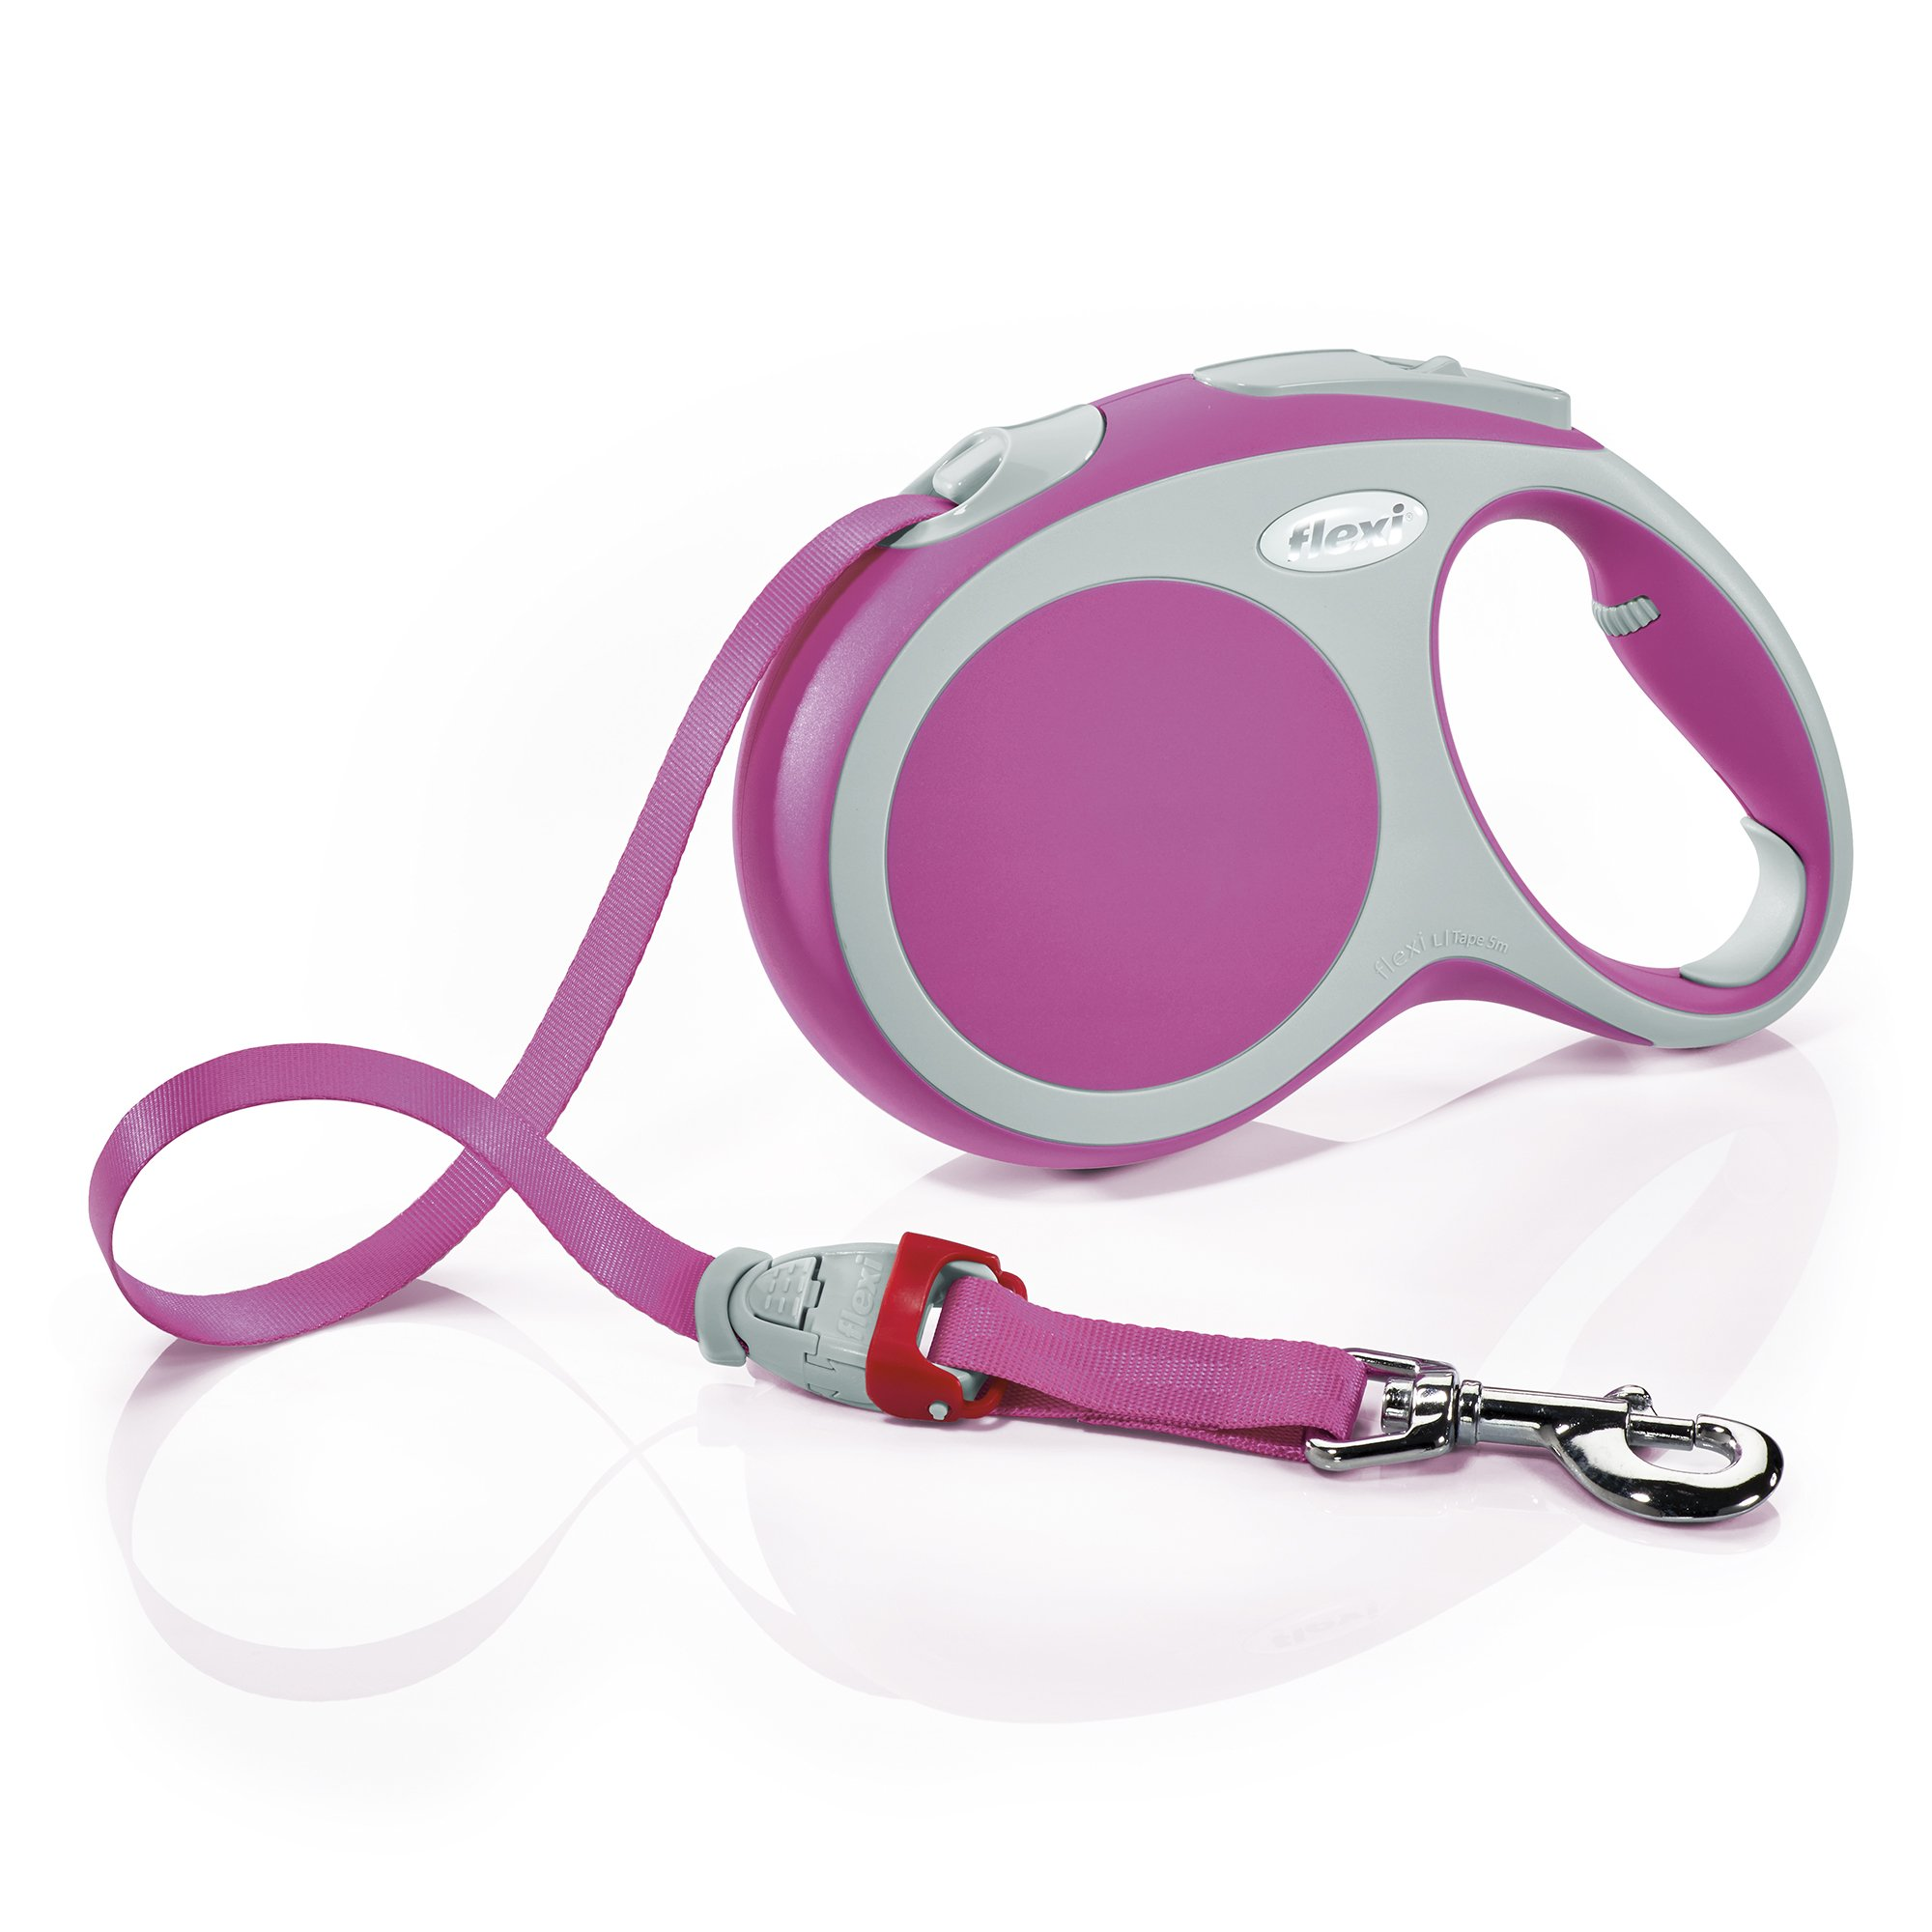 Flexi Vario Retractable Dog Leash (Tape), 16 ft, Large, Pink by Flexi